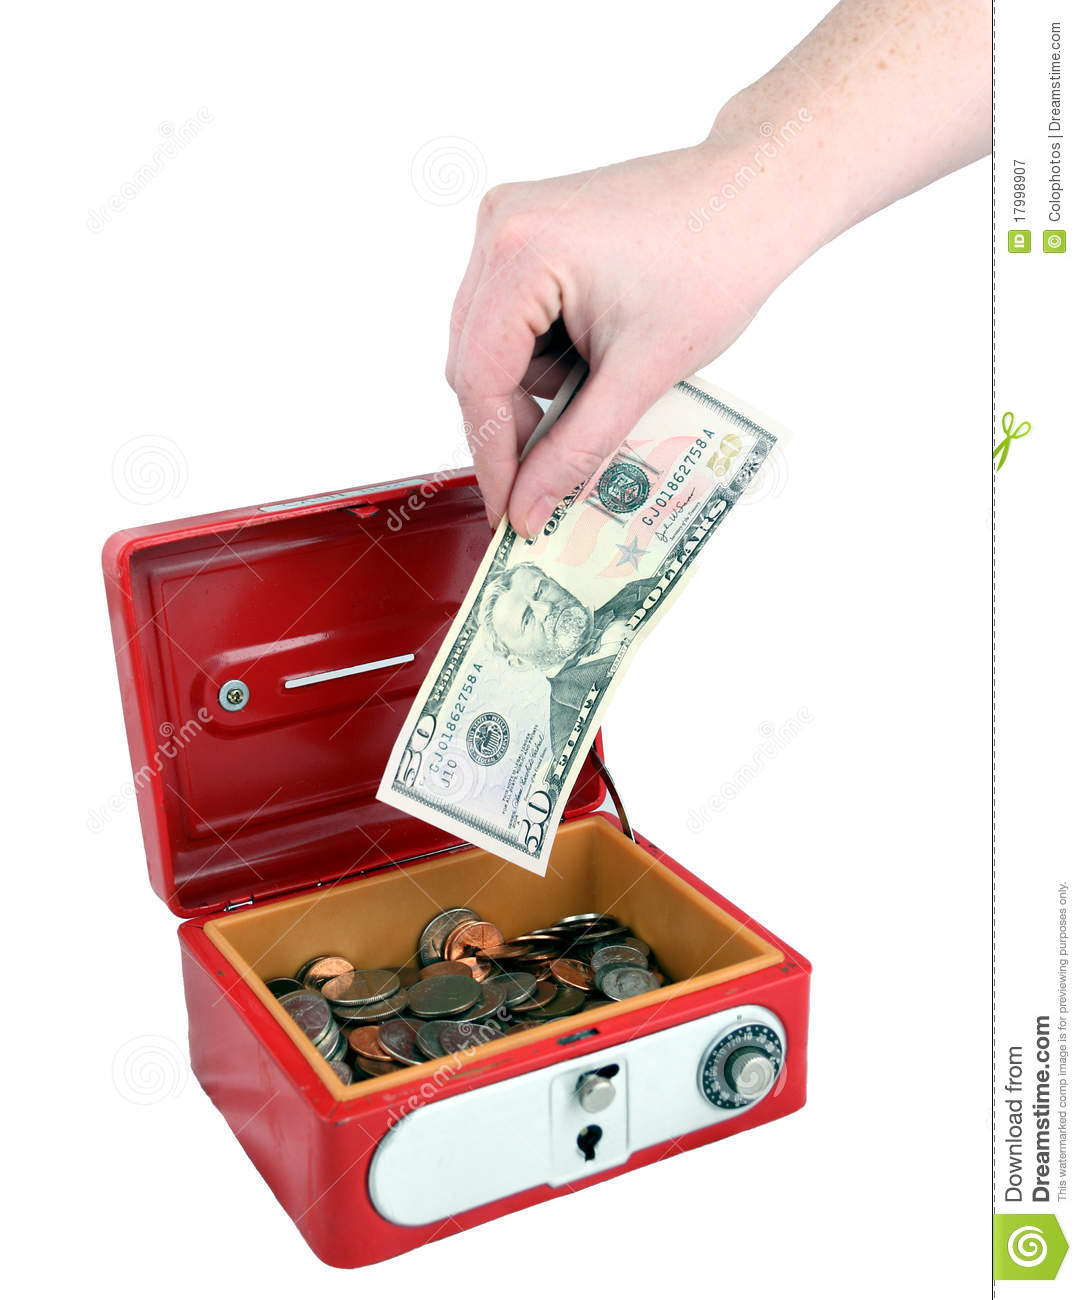 So it's best if I put my money in an account from which I will not be able to withdraw money easily, or without penalties. Sure, sometimes there are limits on withdrawals from savings accounts. But those don't kick in until the end of the account cycle, so that's not necessarily a good enough penalty.